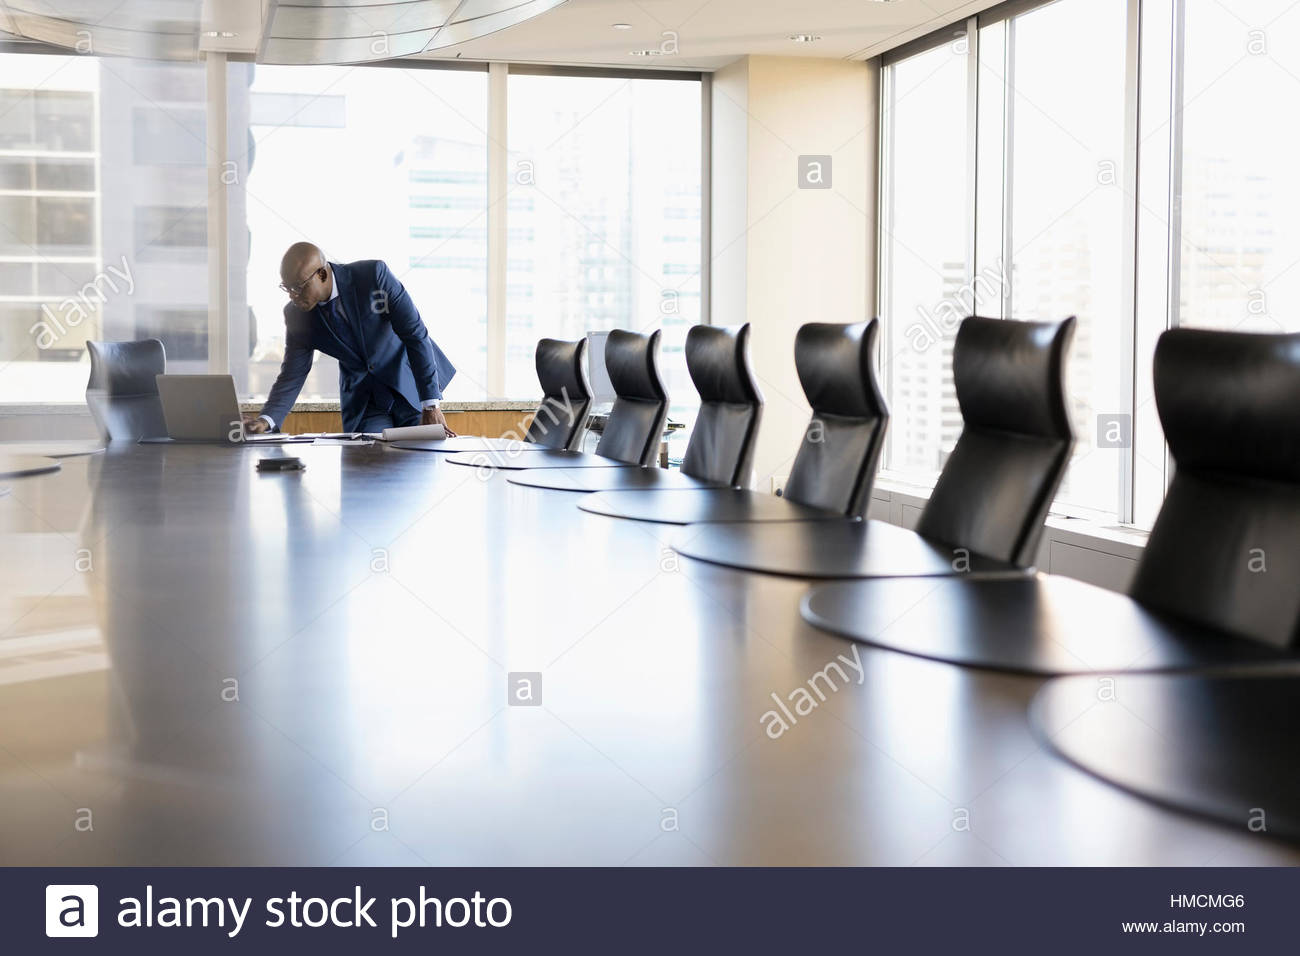 Male lawyer working at laptop in conference room - Stock Image